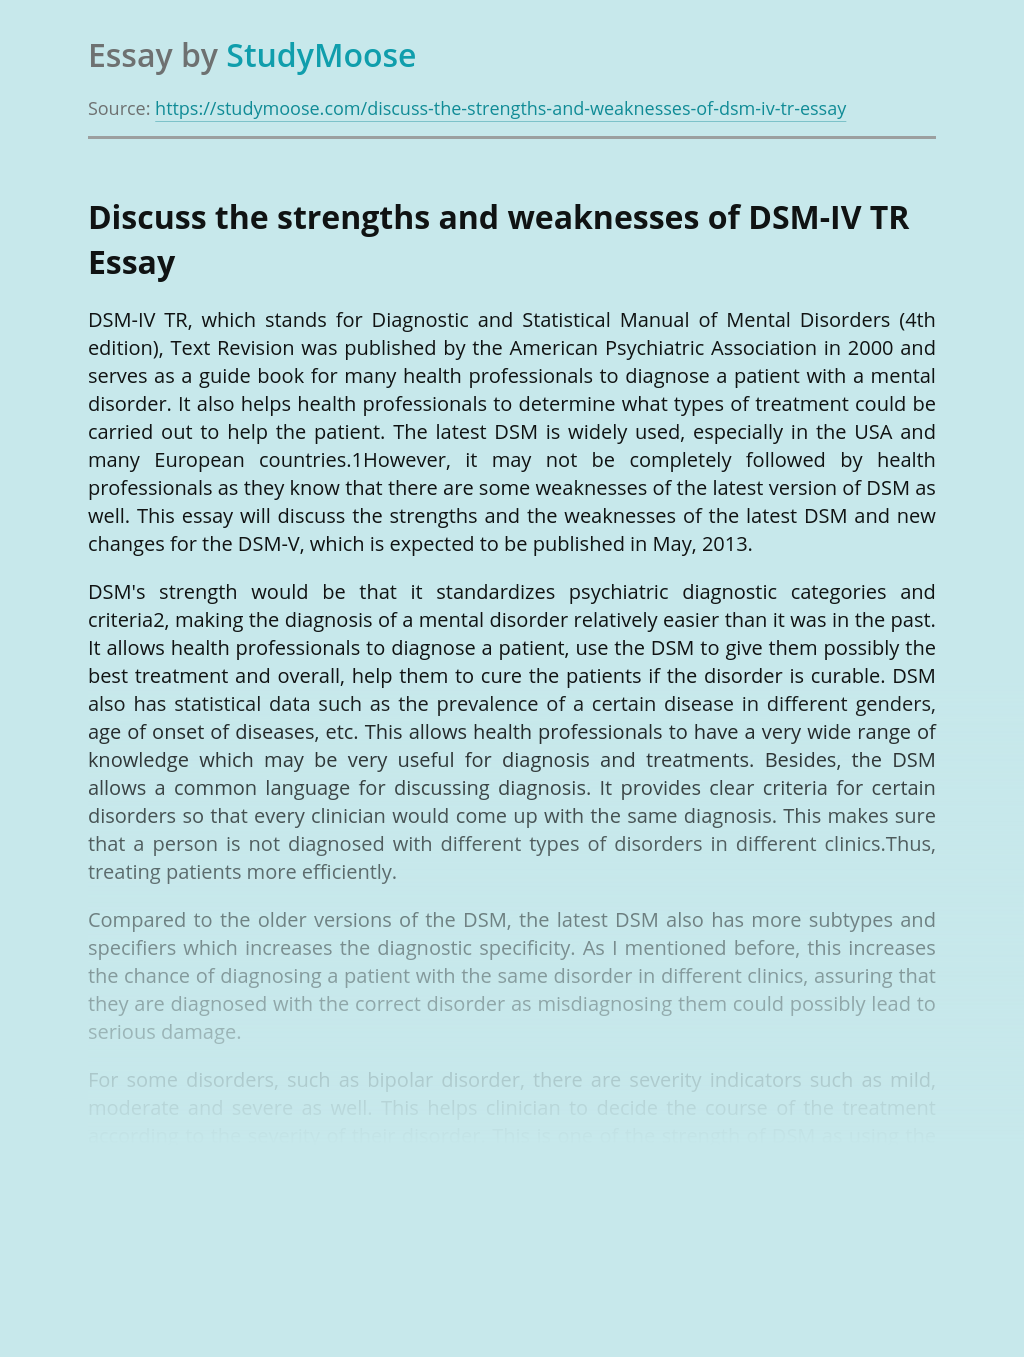 Discuss the strengths and weaknesses of DSM-IV TR